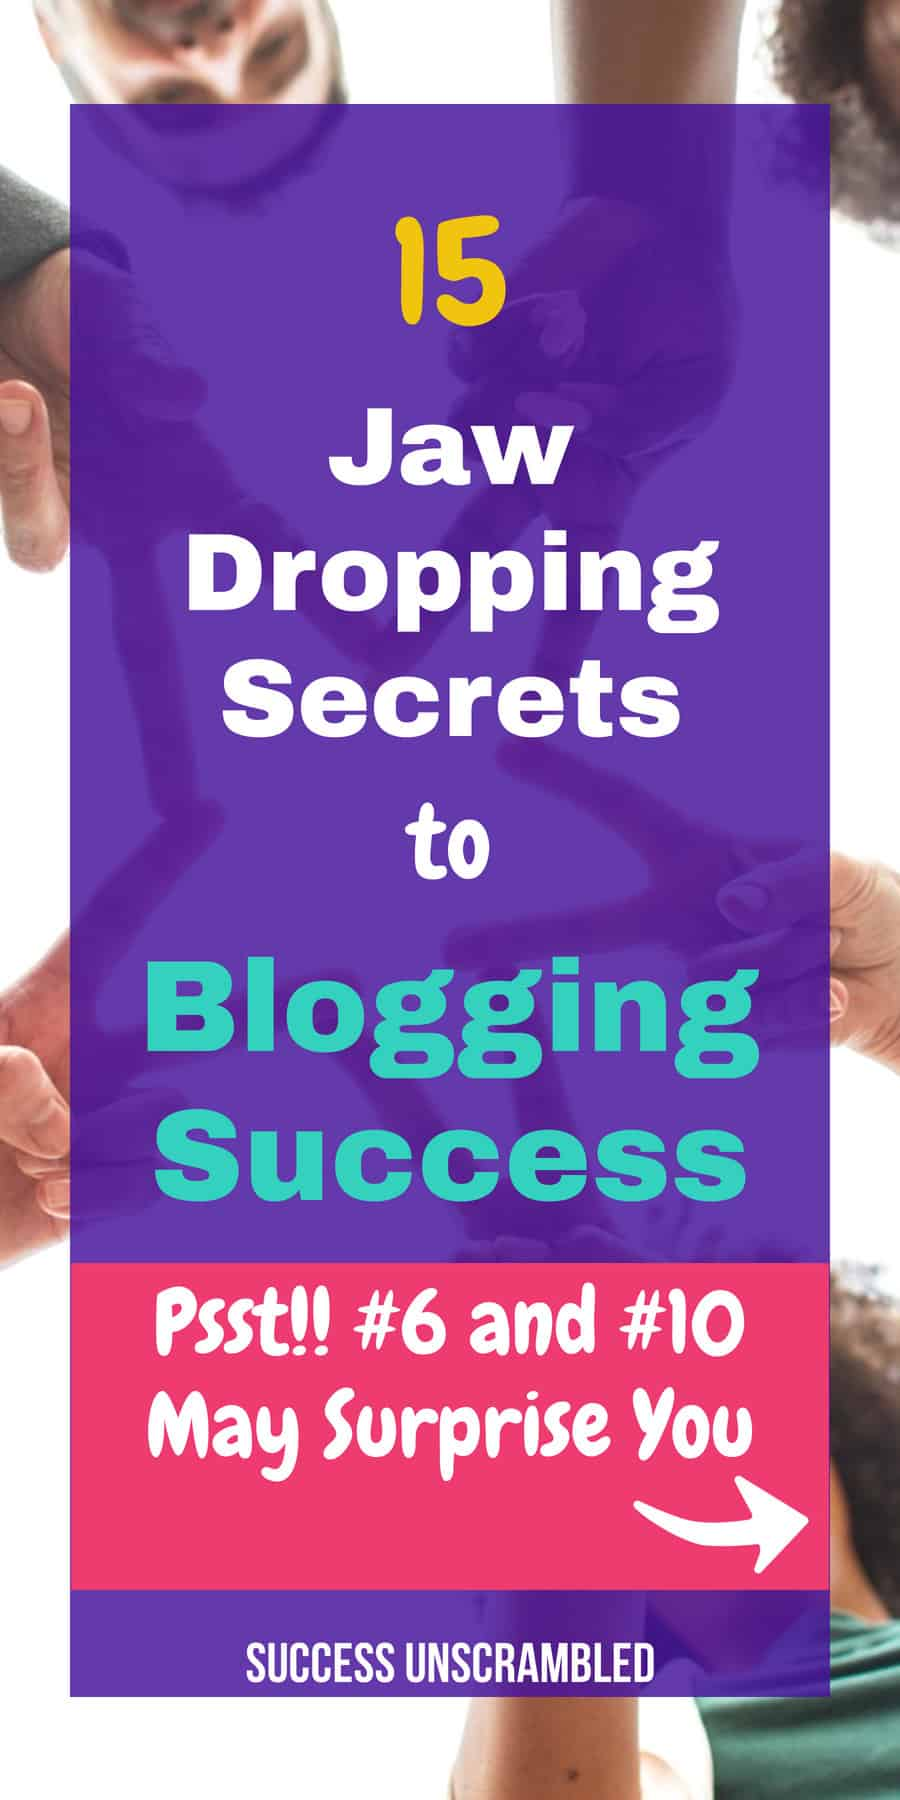 15 Jaw-dropping secrets to blogging success